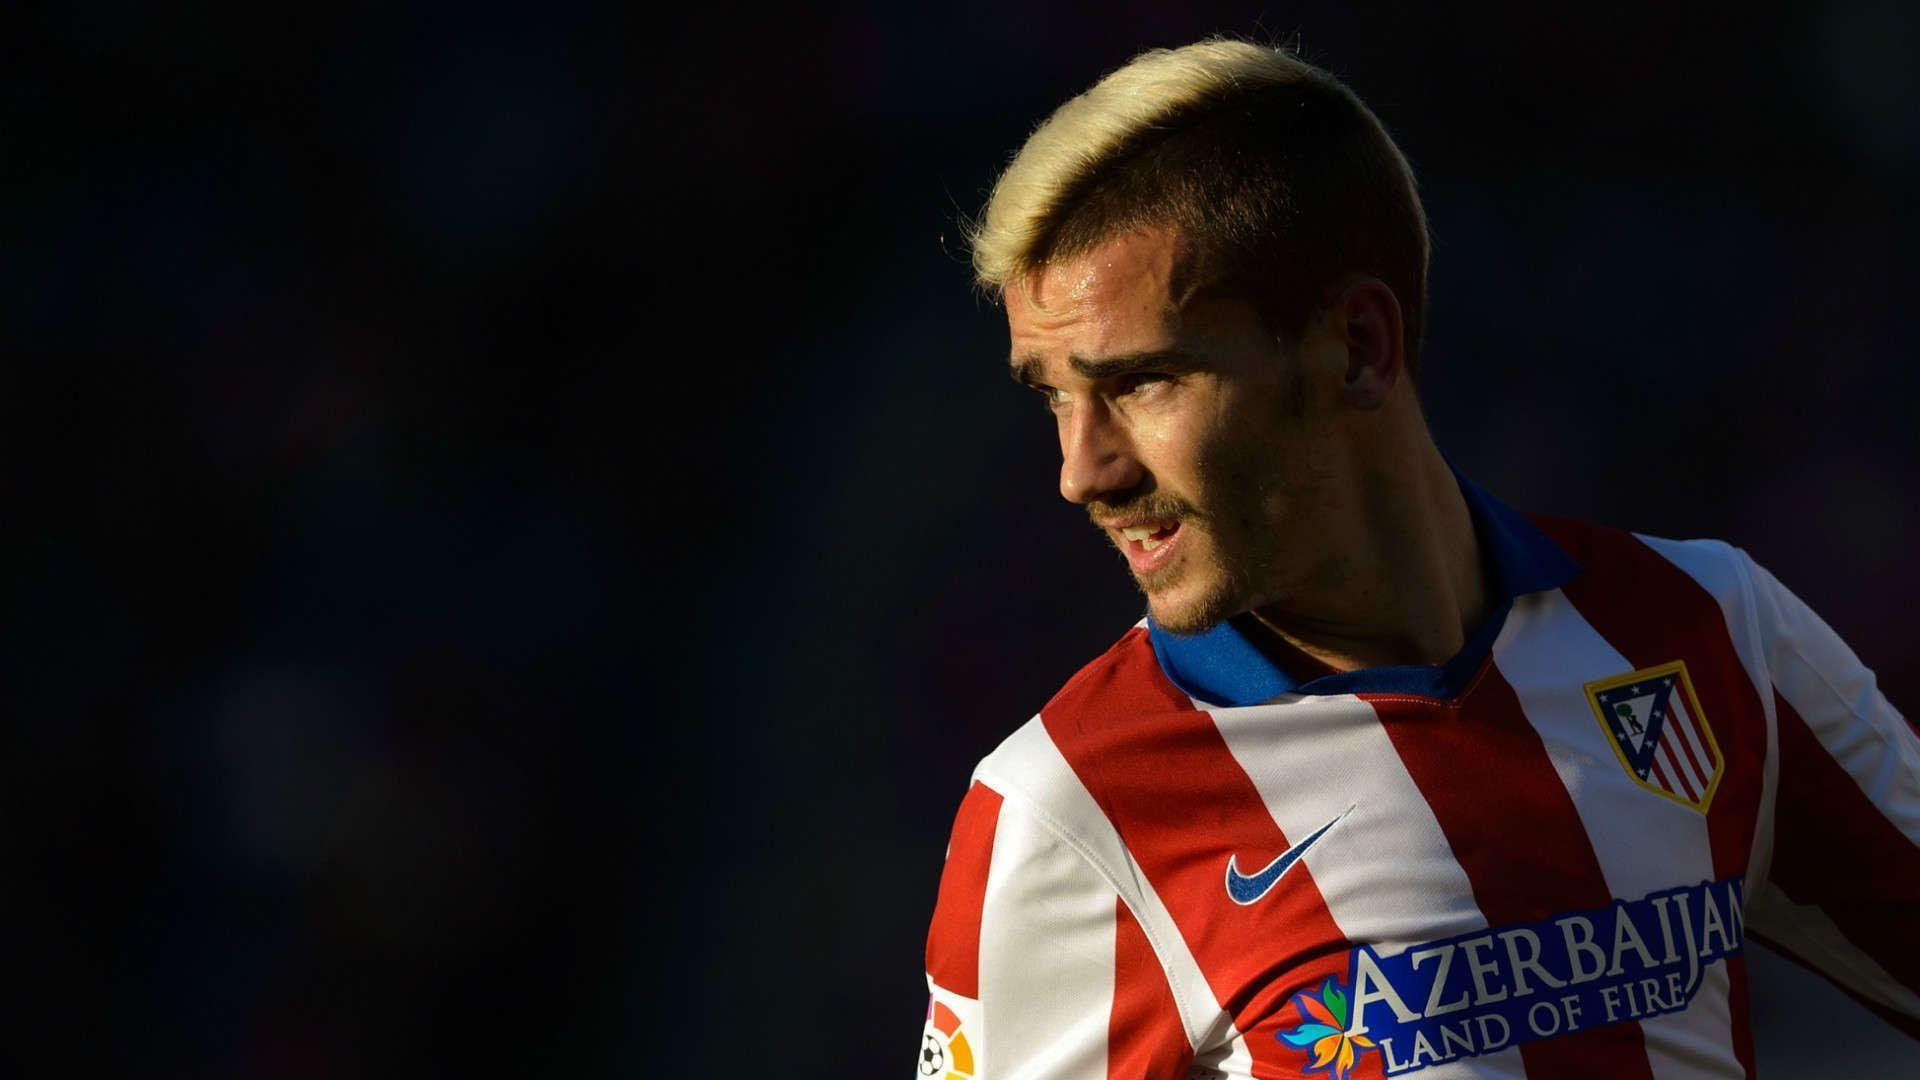 Antoine Griezmann Wallpapers - HD Wallpapers Backgrounds of Your ...